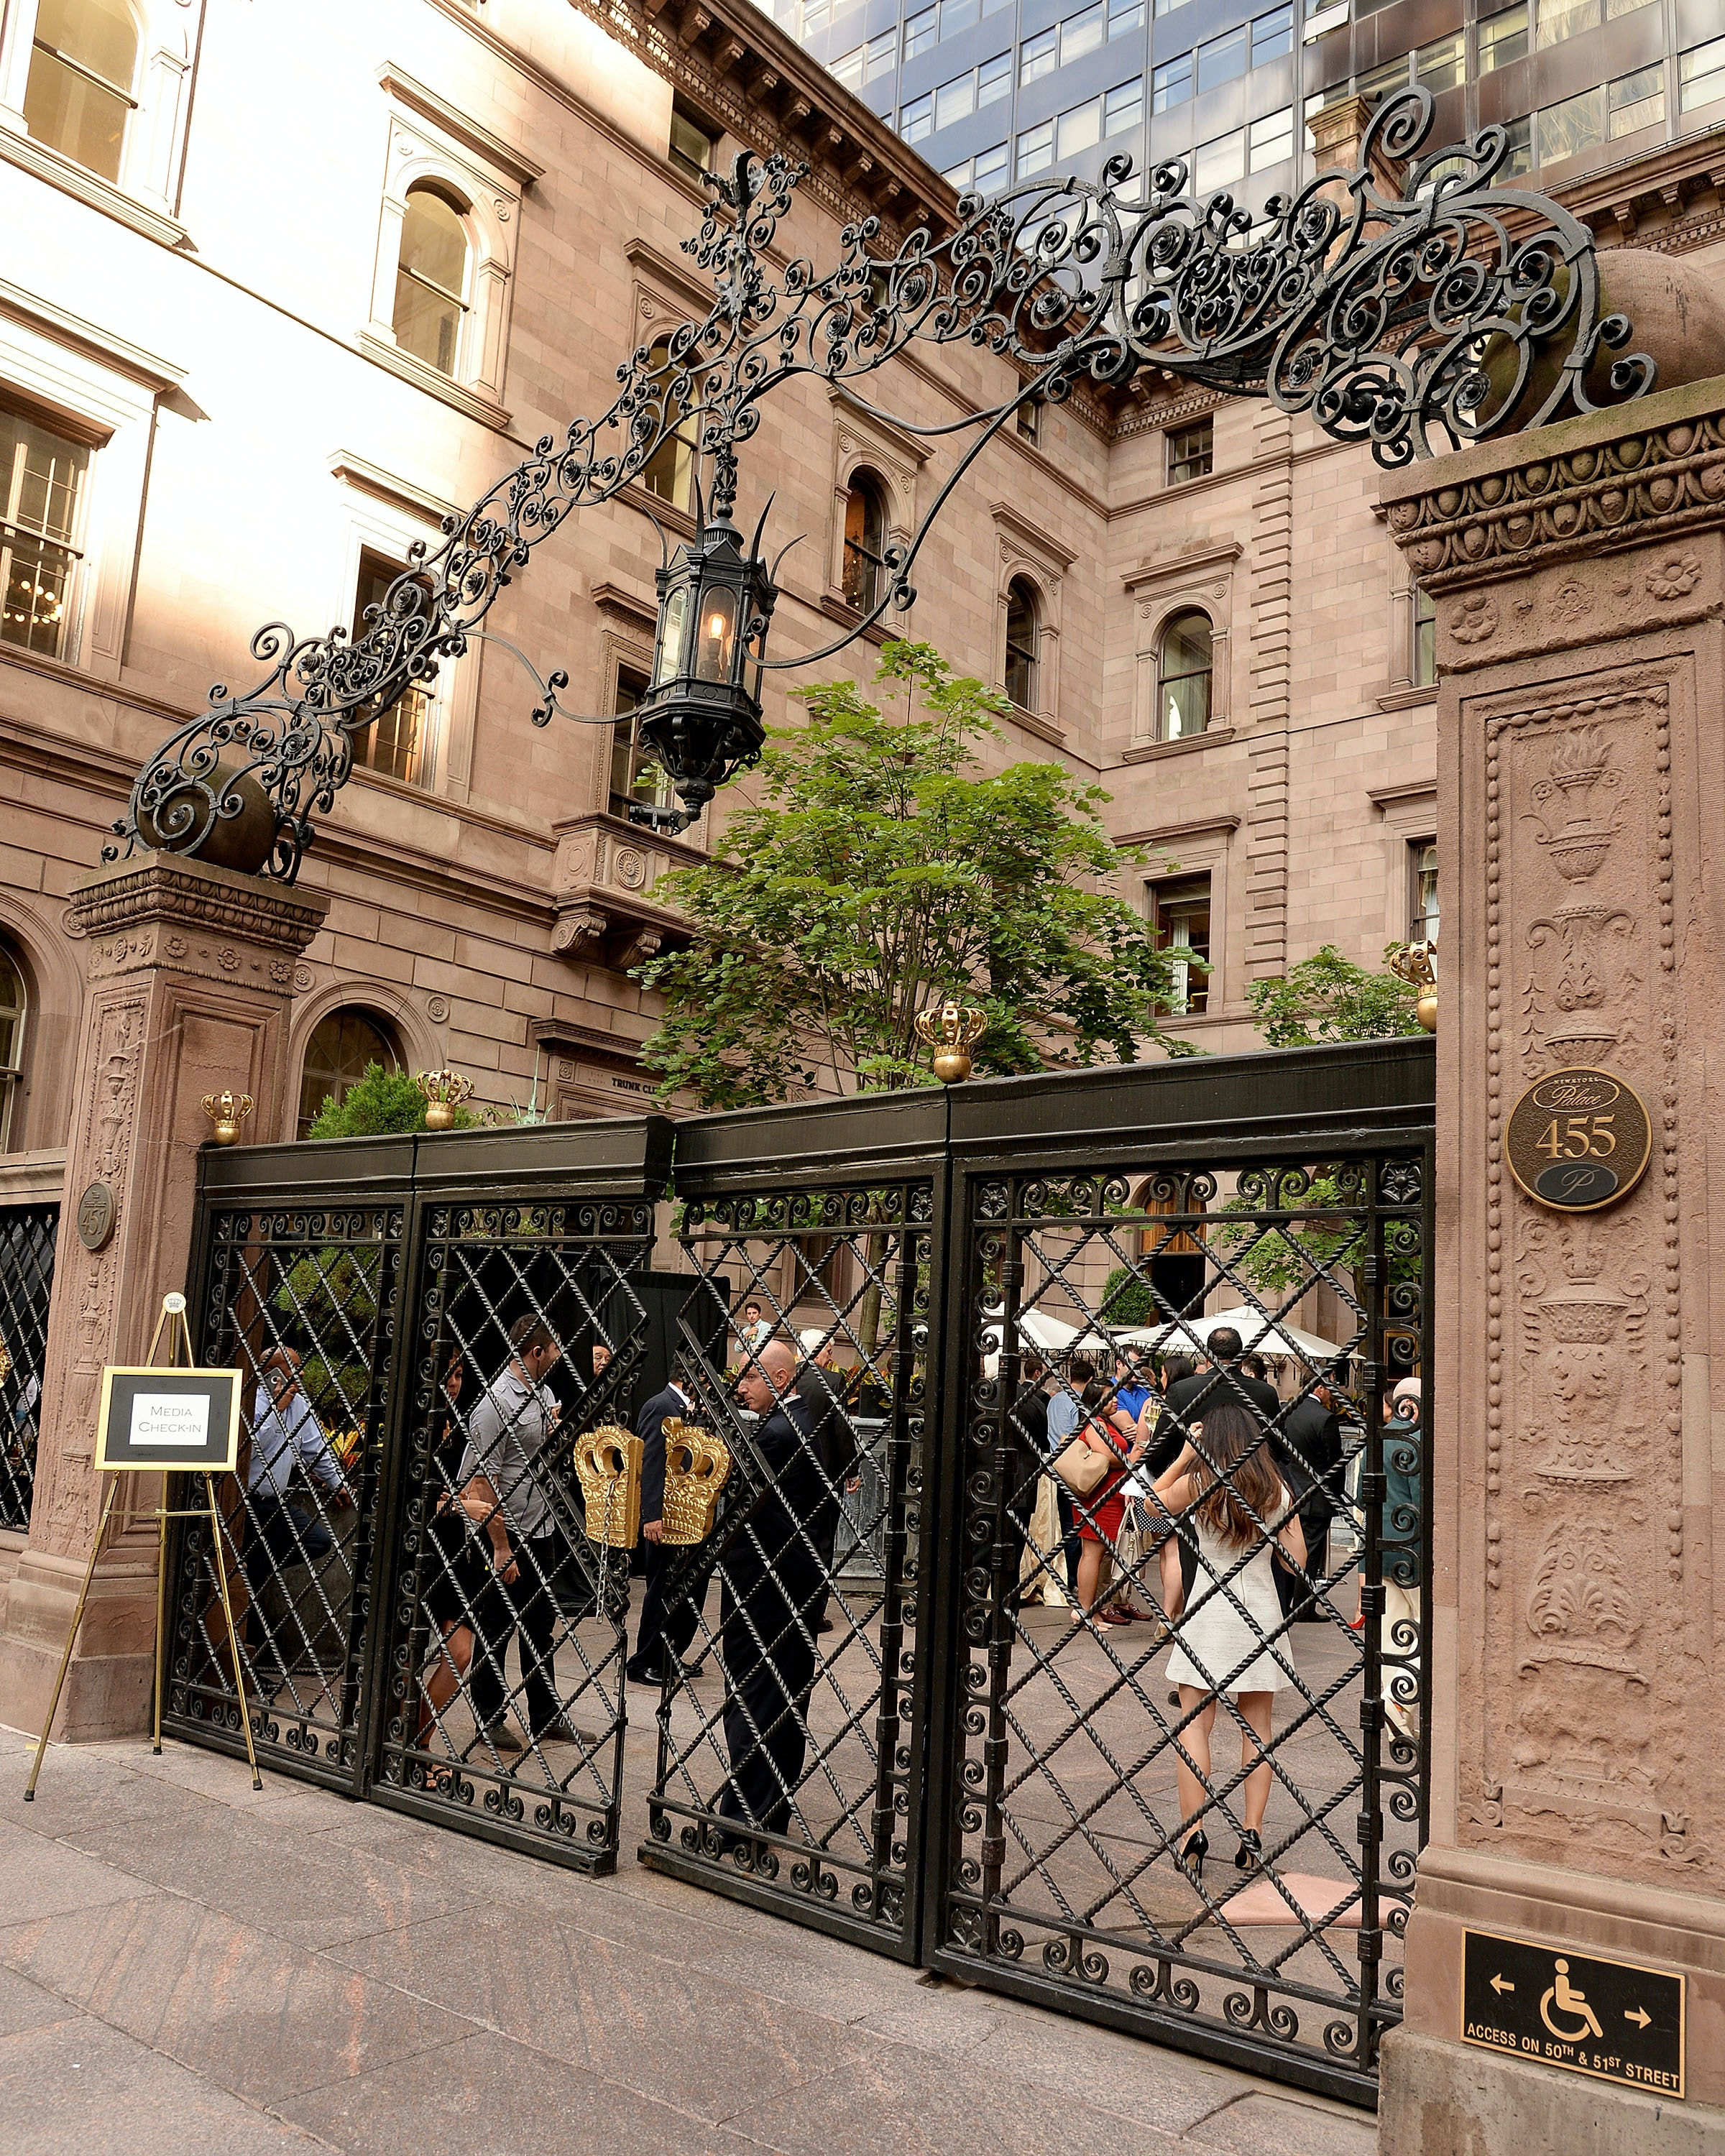 15 'Gossip Girl' Filming Locations In New York City That You